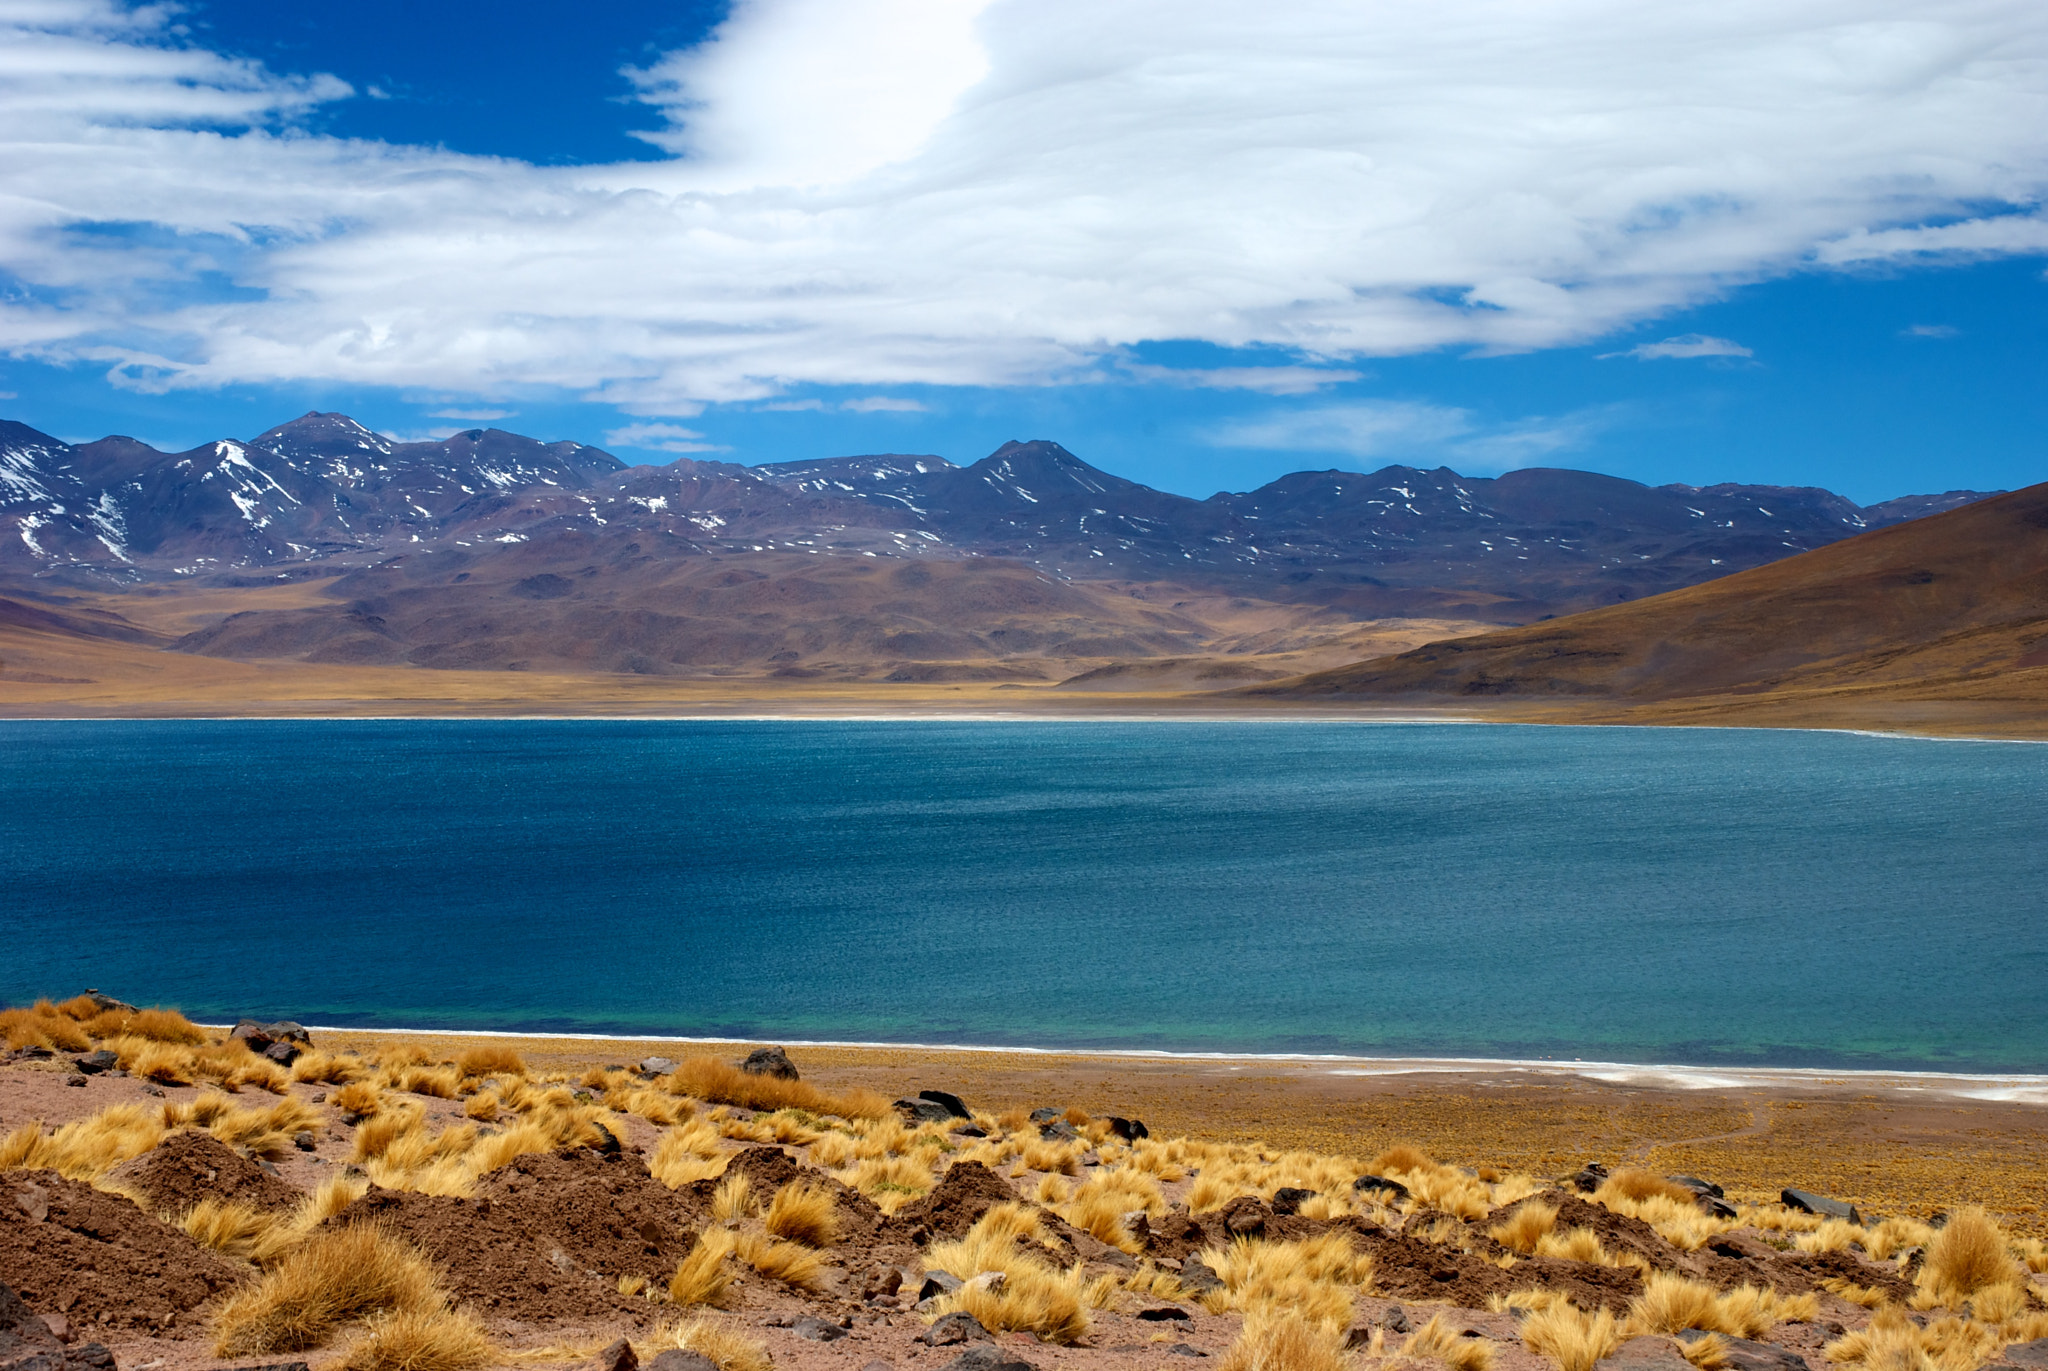 Photograph Water at high altitude by Nandan Joshi on 500px